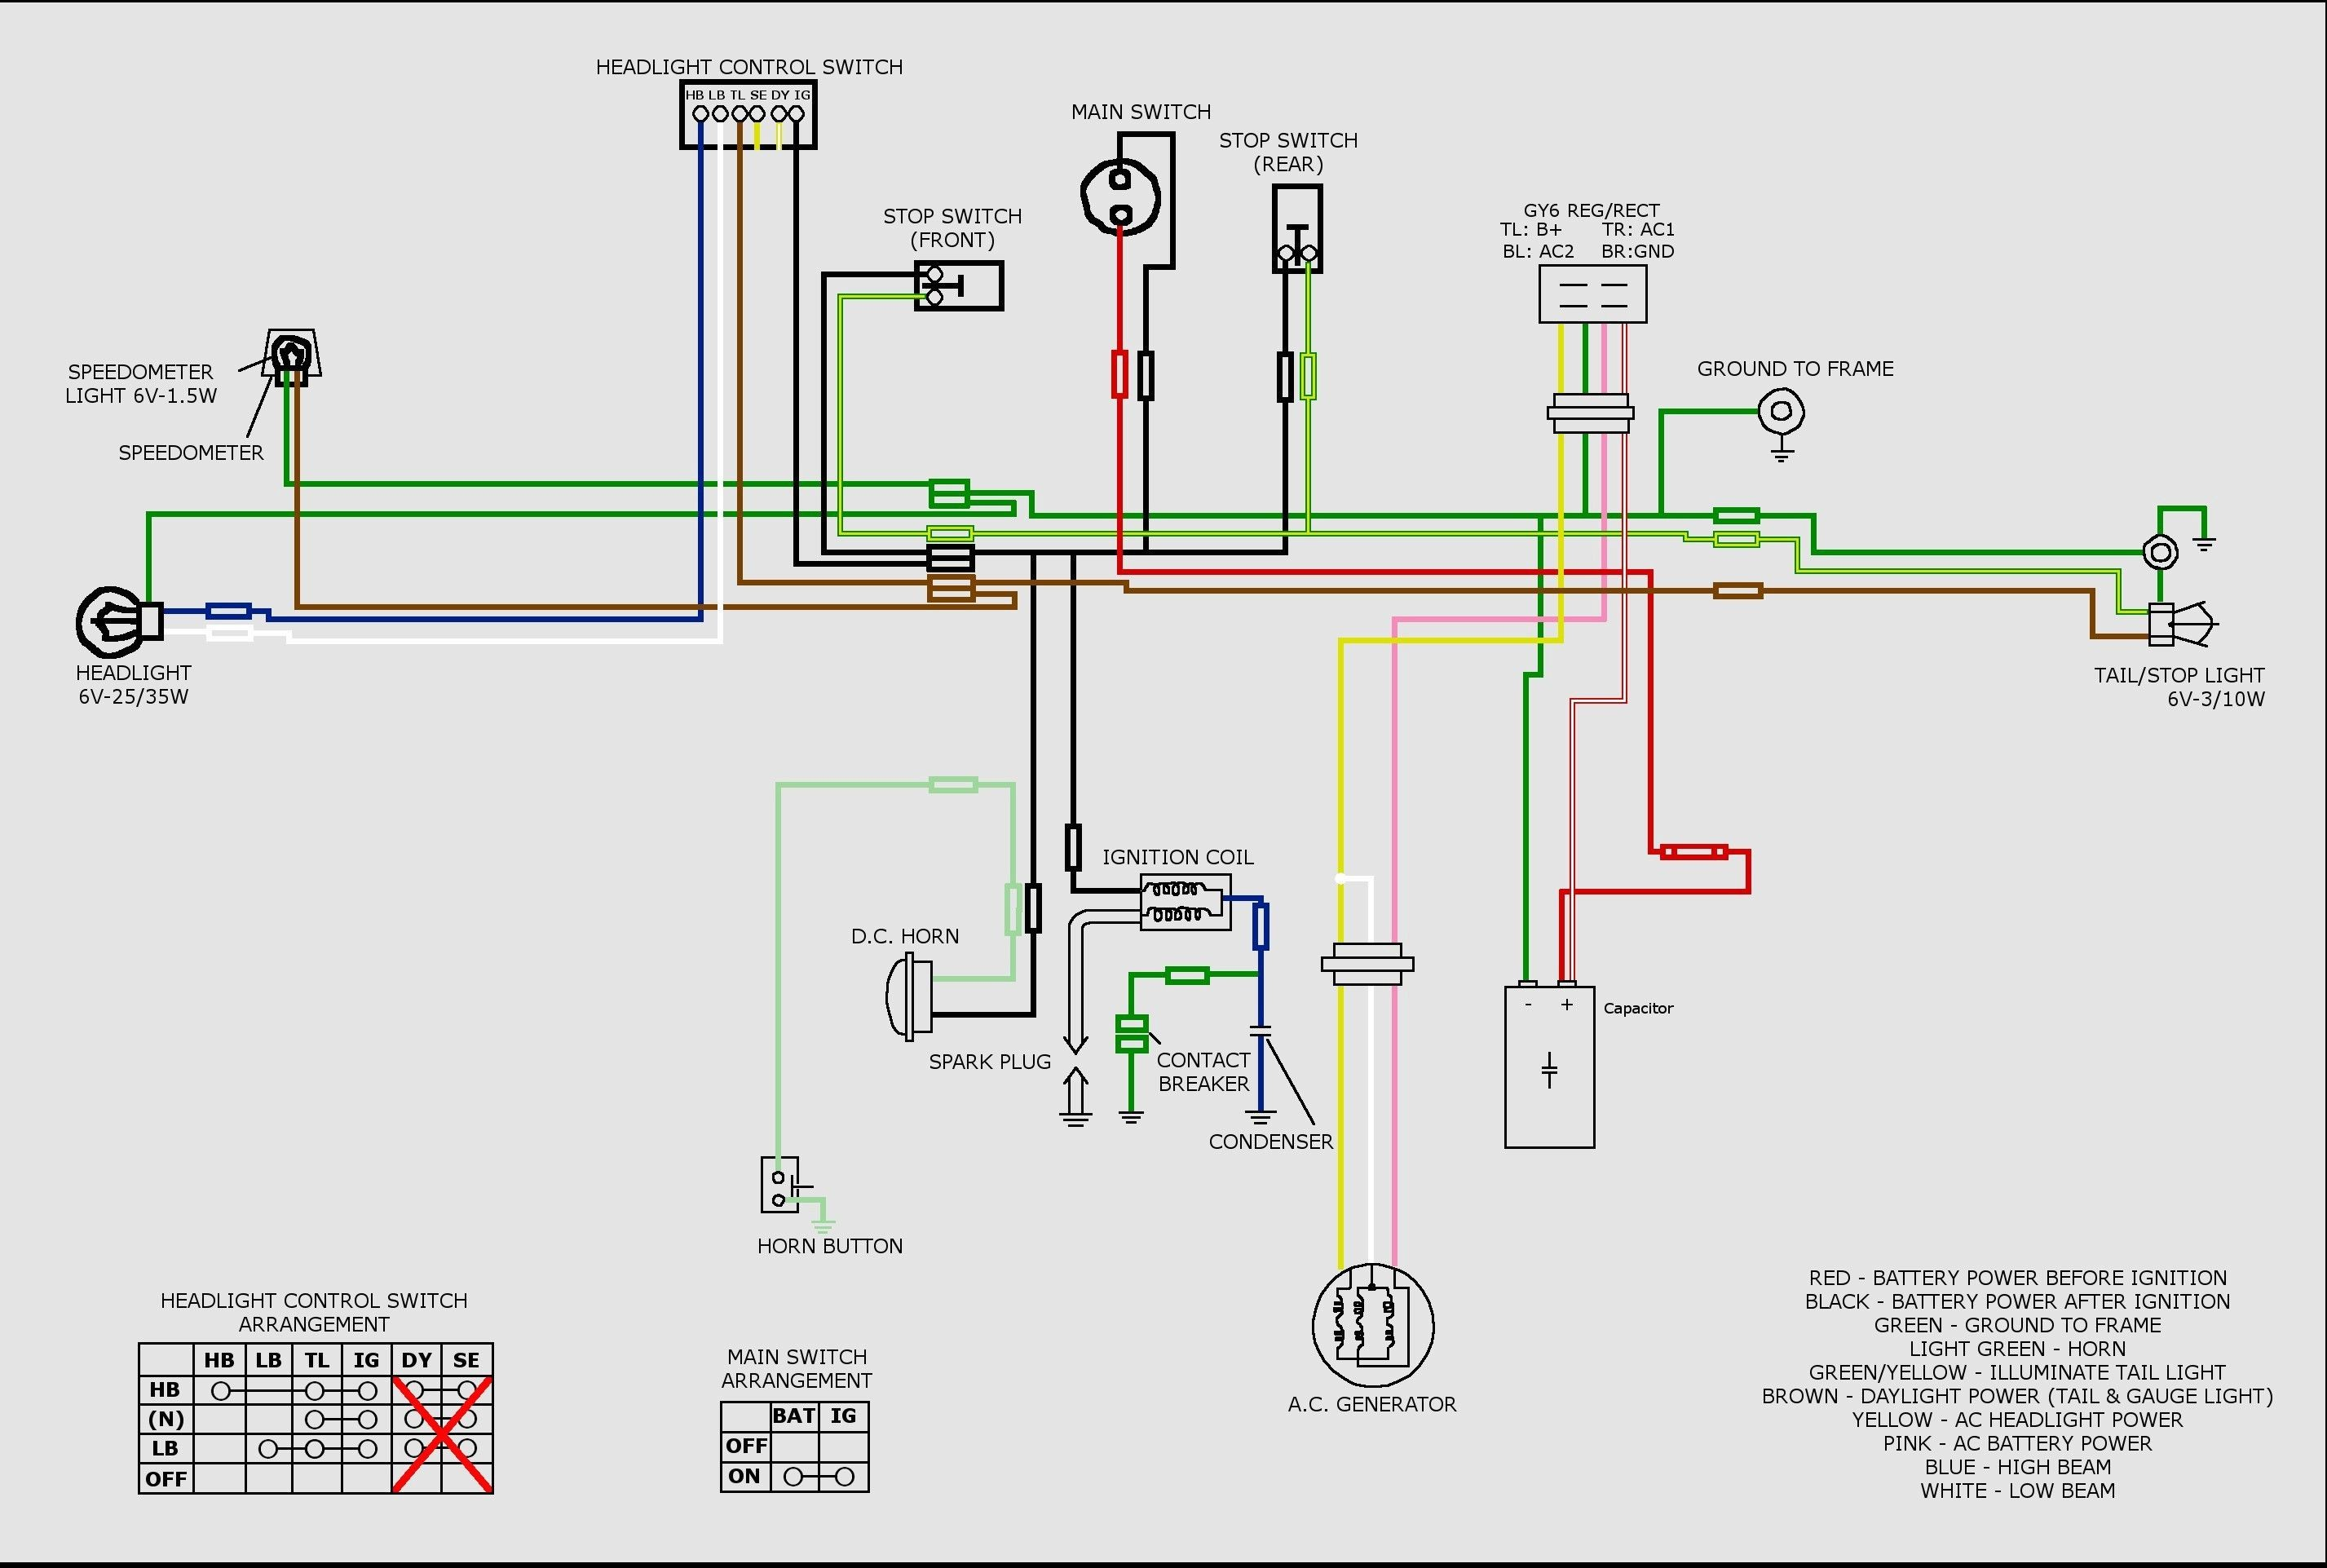 Engine Breakdown Diagram Qmb139 Engine Diagram Wiring Diagram forward Of Engine Breakdown Diagram